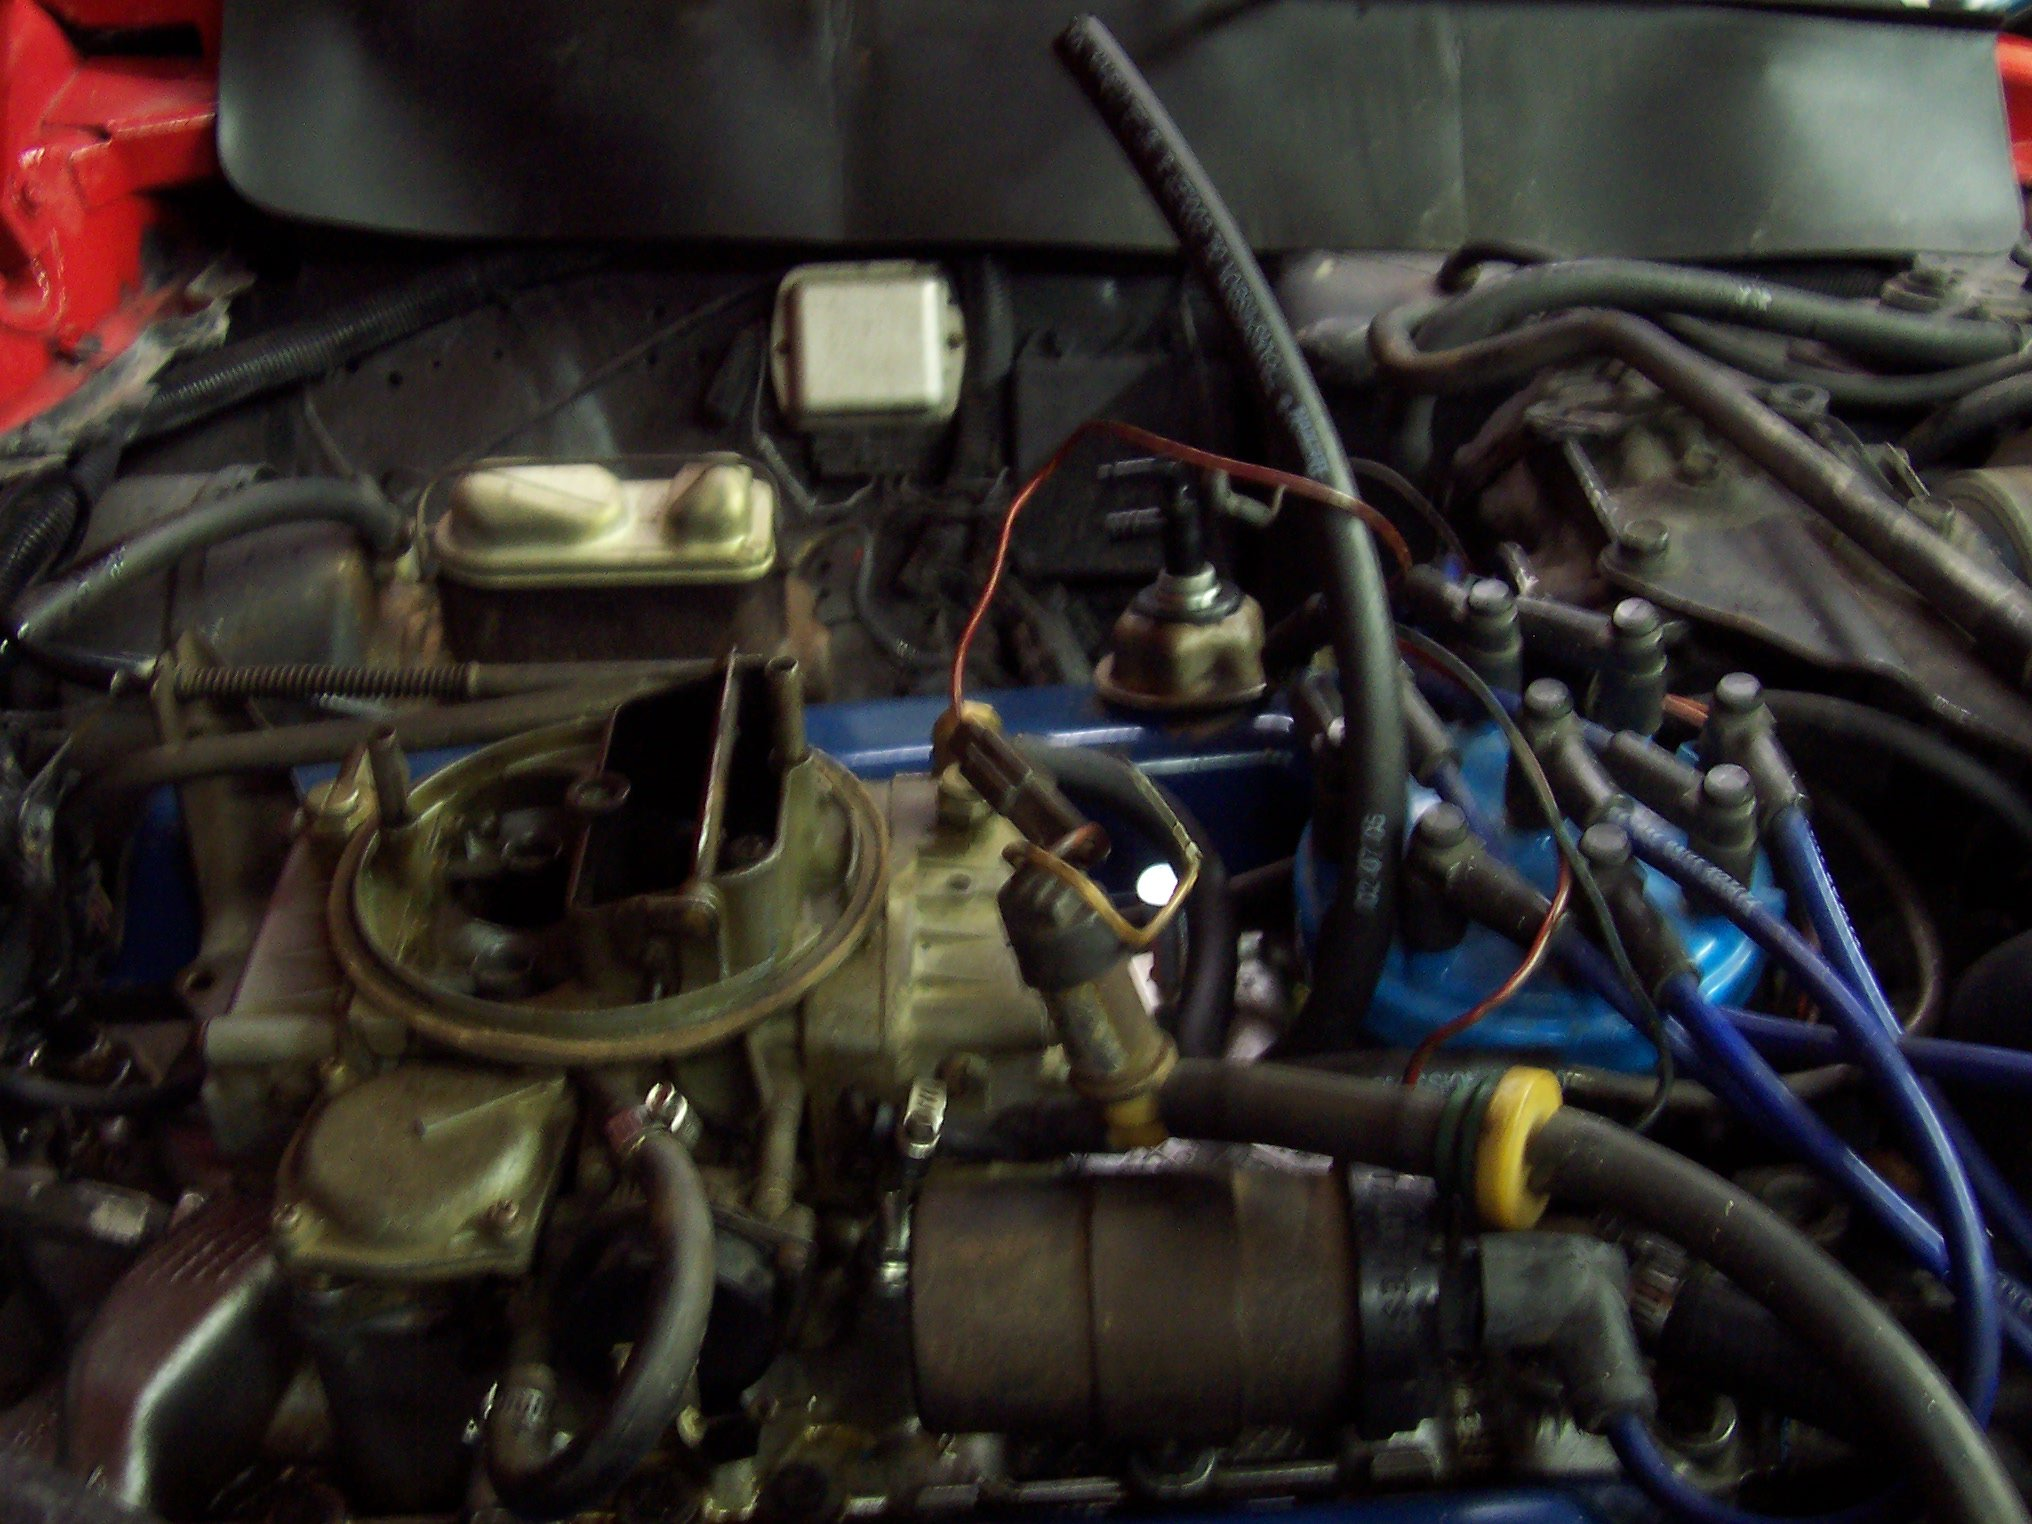 1978 Mustang Hose Hookups  And Vacuum Hose Hookup Issues